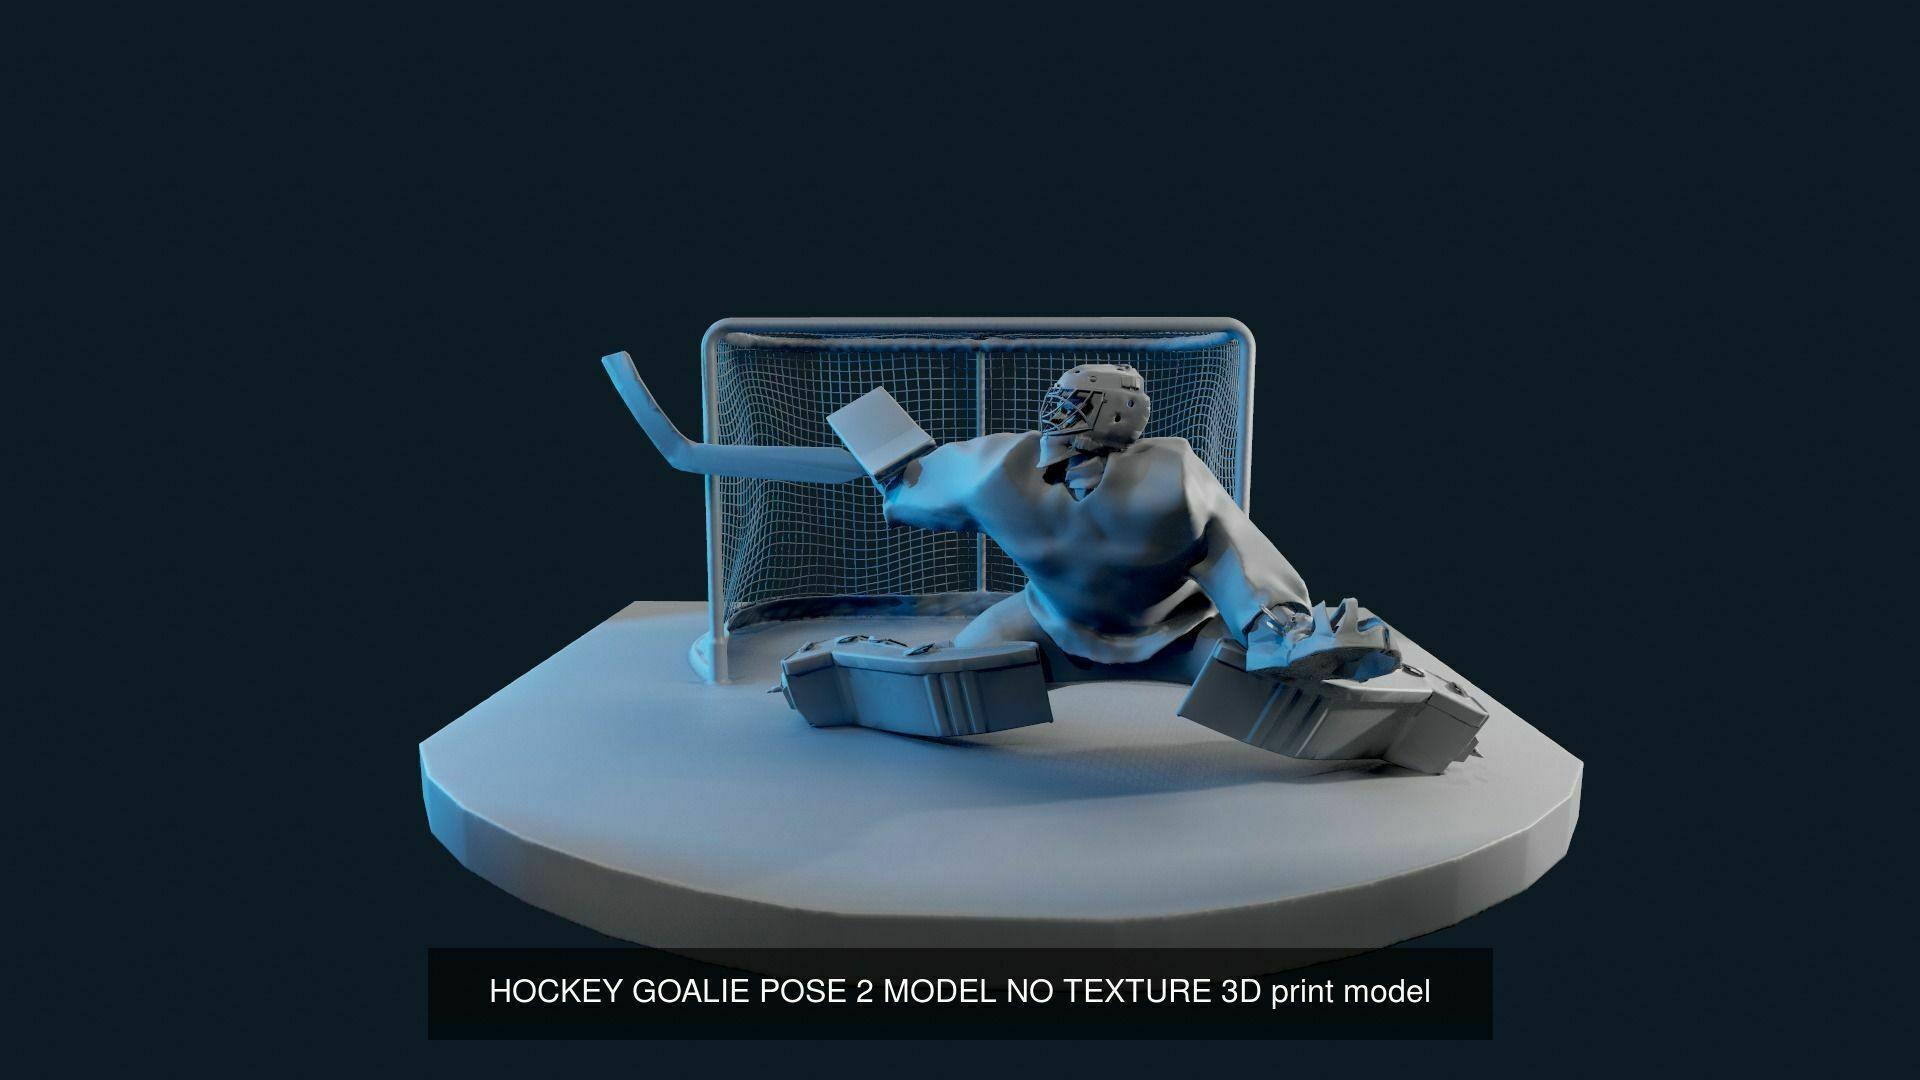 ultimate-hockey-poses-pack-model-no-texture-3d-model-max-obj-fbx-stl-tbscene (6).jpg Download OBJ file ULTIMATE HOCKEY POSES PACK MODEL NO TEXTURE 3D Model Collection • 3D printing template, NightCreativity